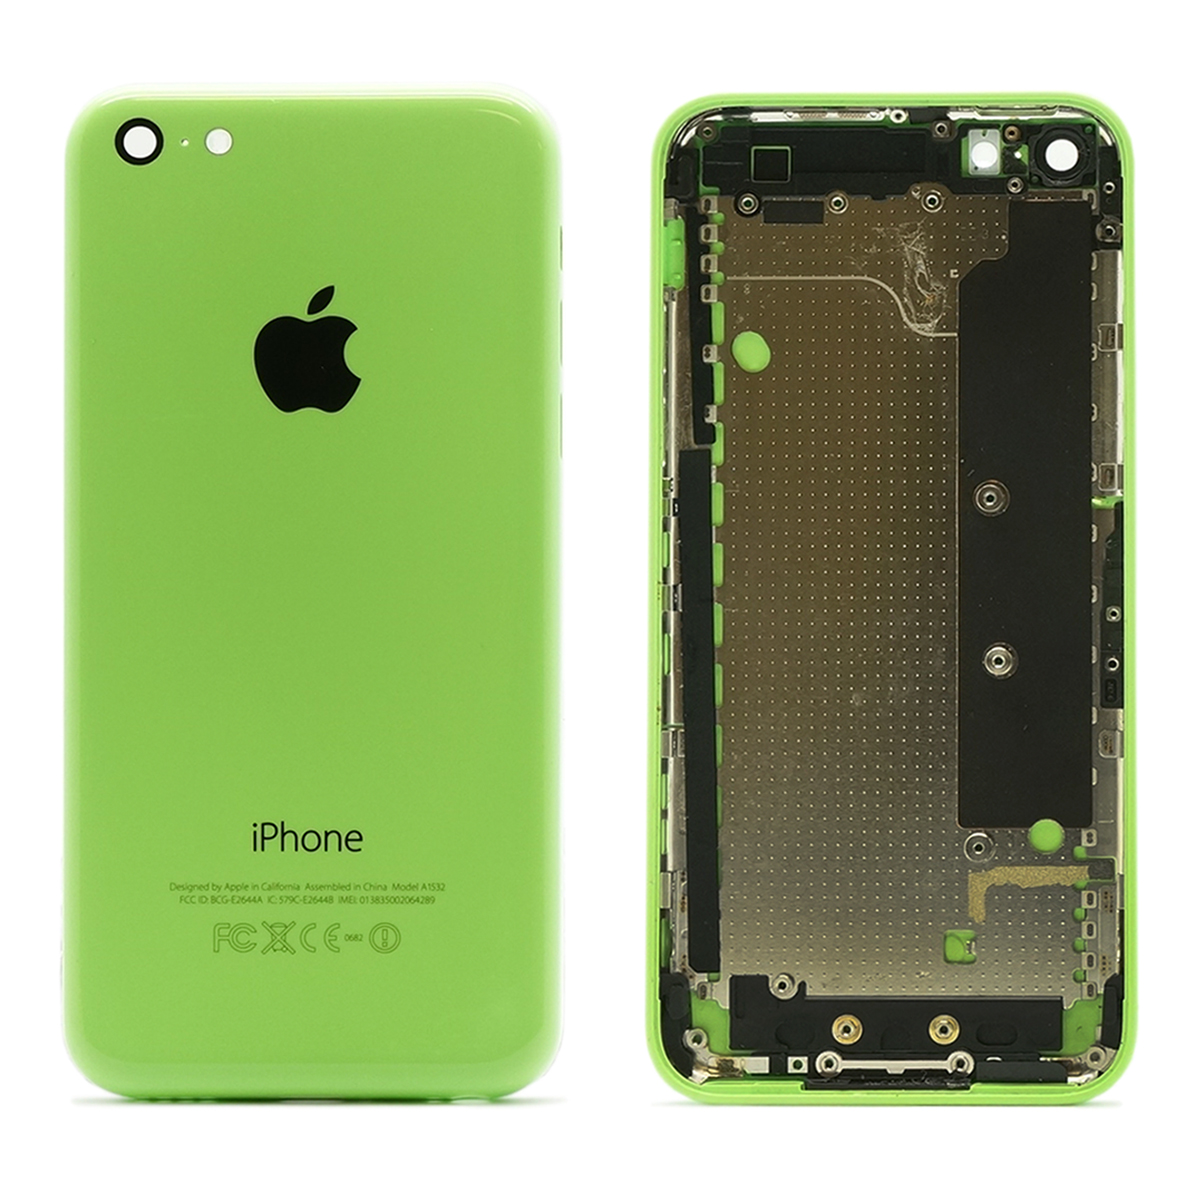 mint refurbished original apple iphone 5c white blue green back housing ebay. Black Bedroom Furniture Sets. Home Design Ideas